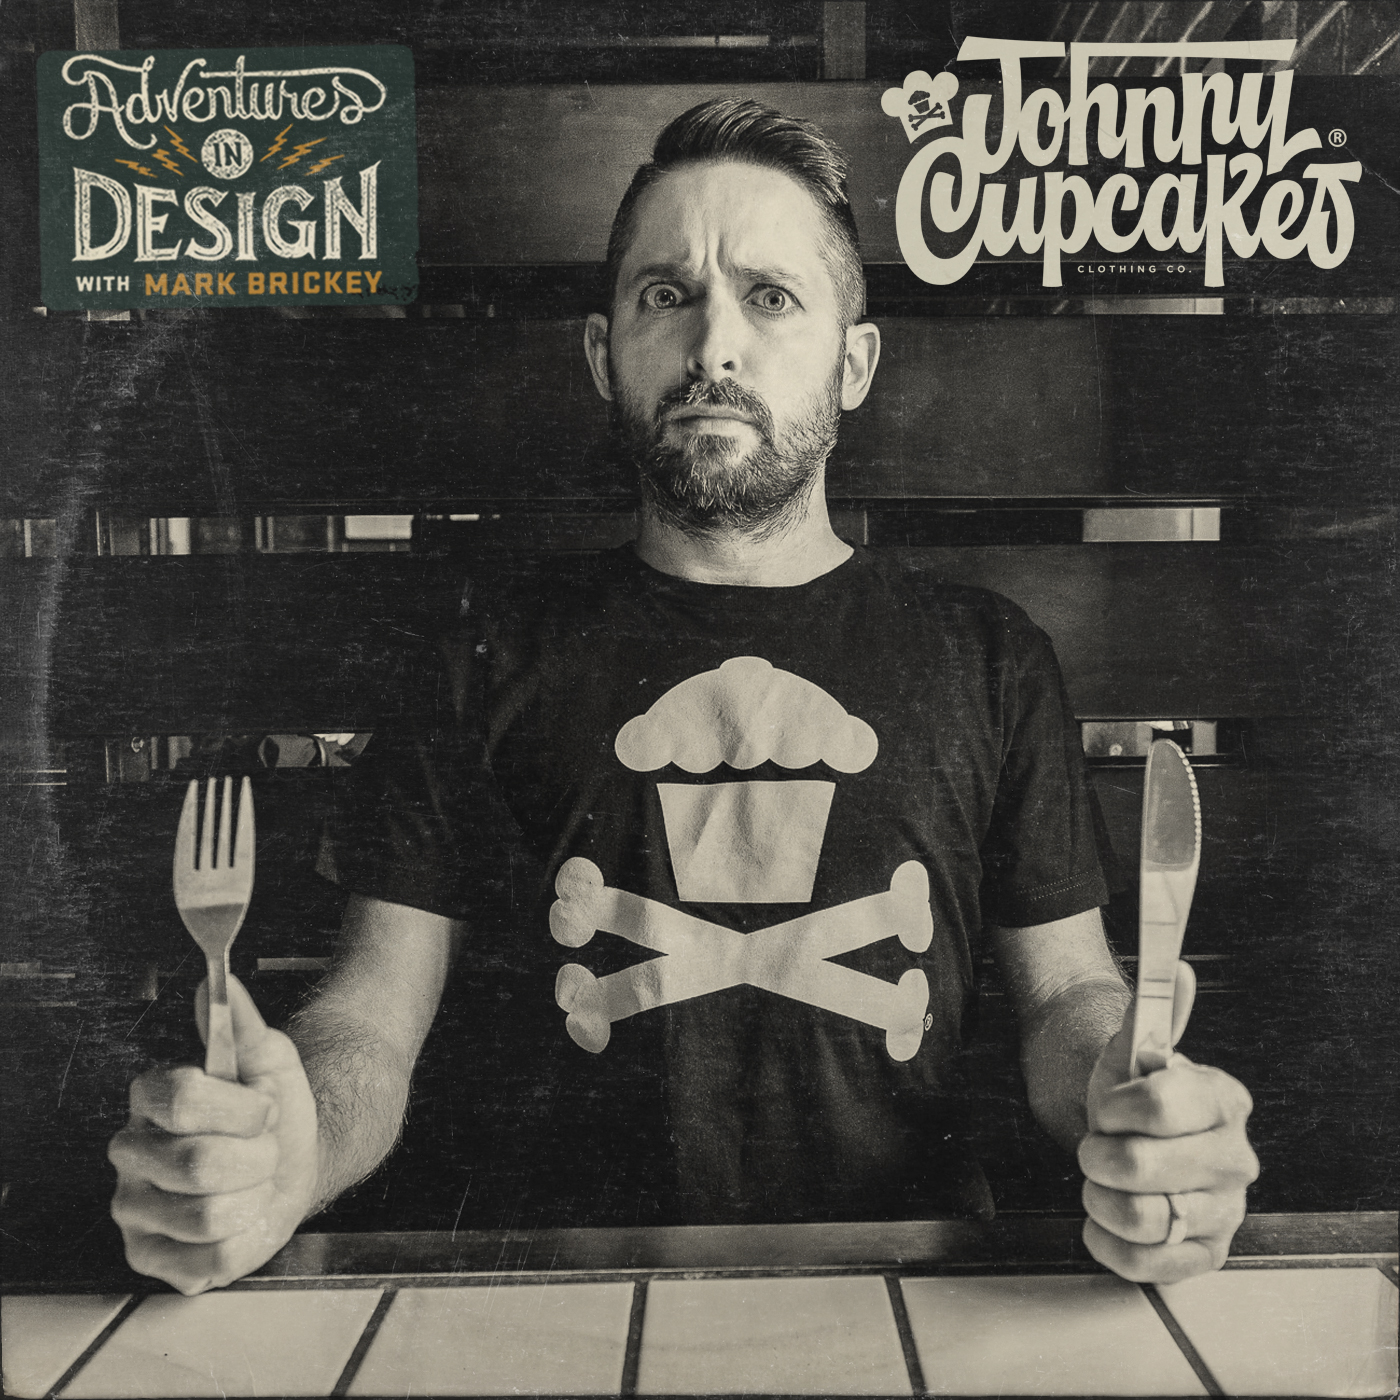 454 - Johnny Cupcakes